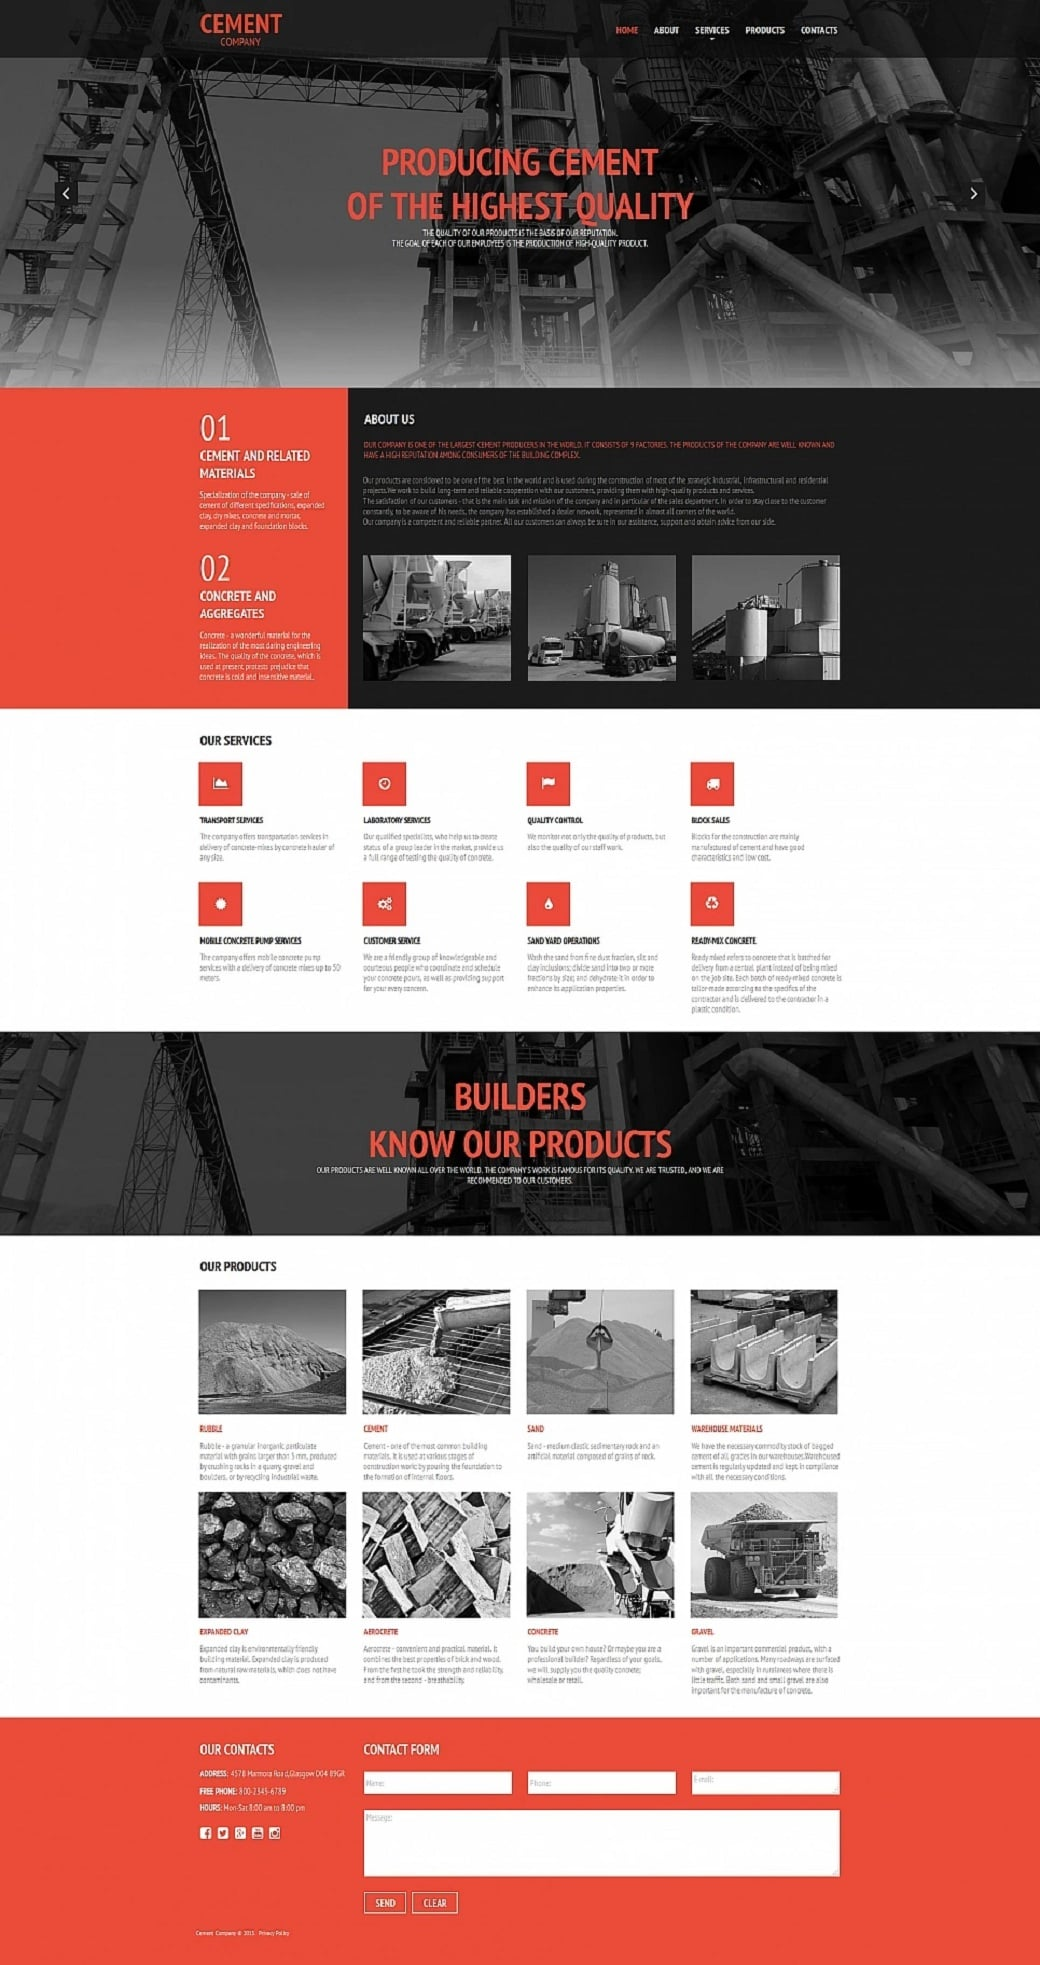 How to make an industrial website - cement company